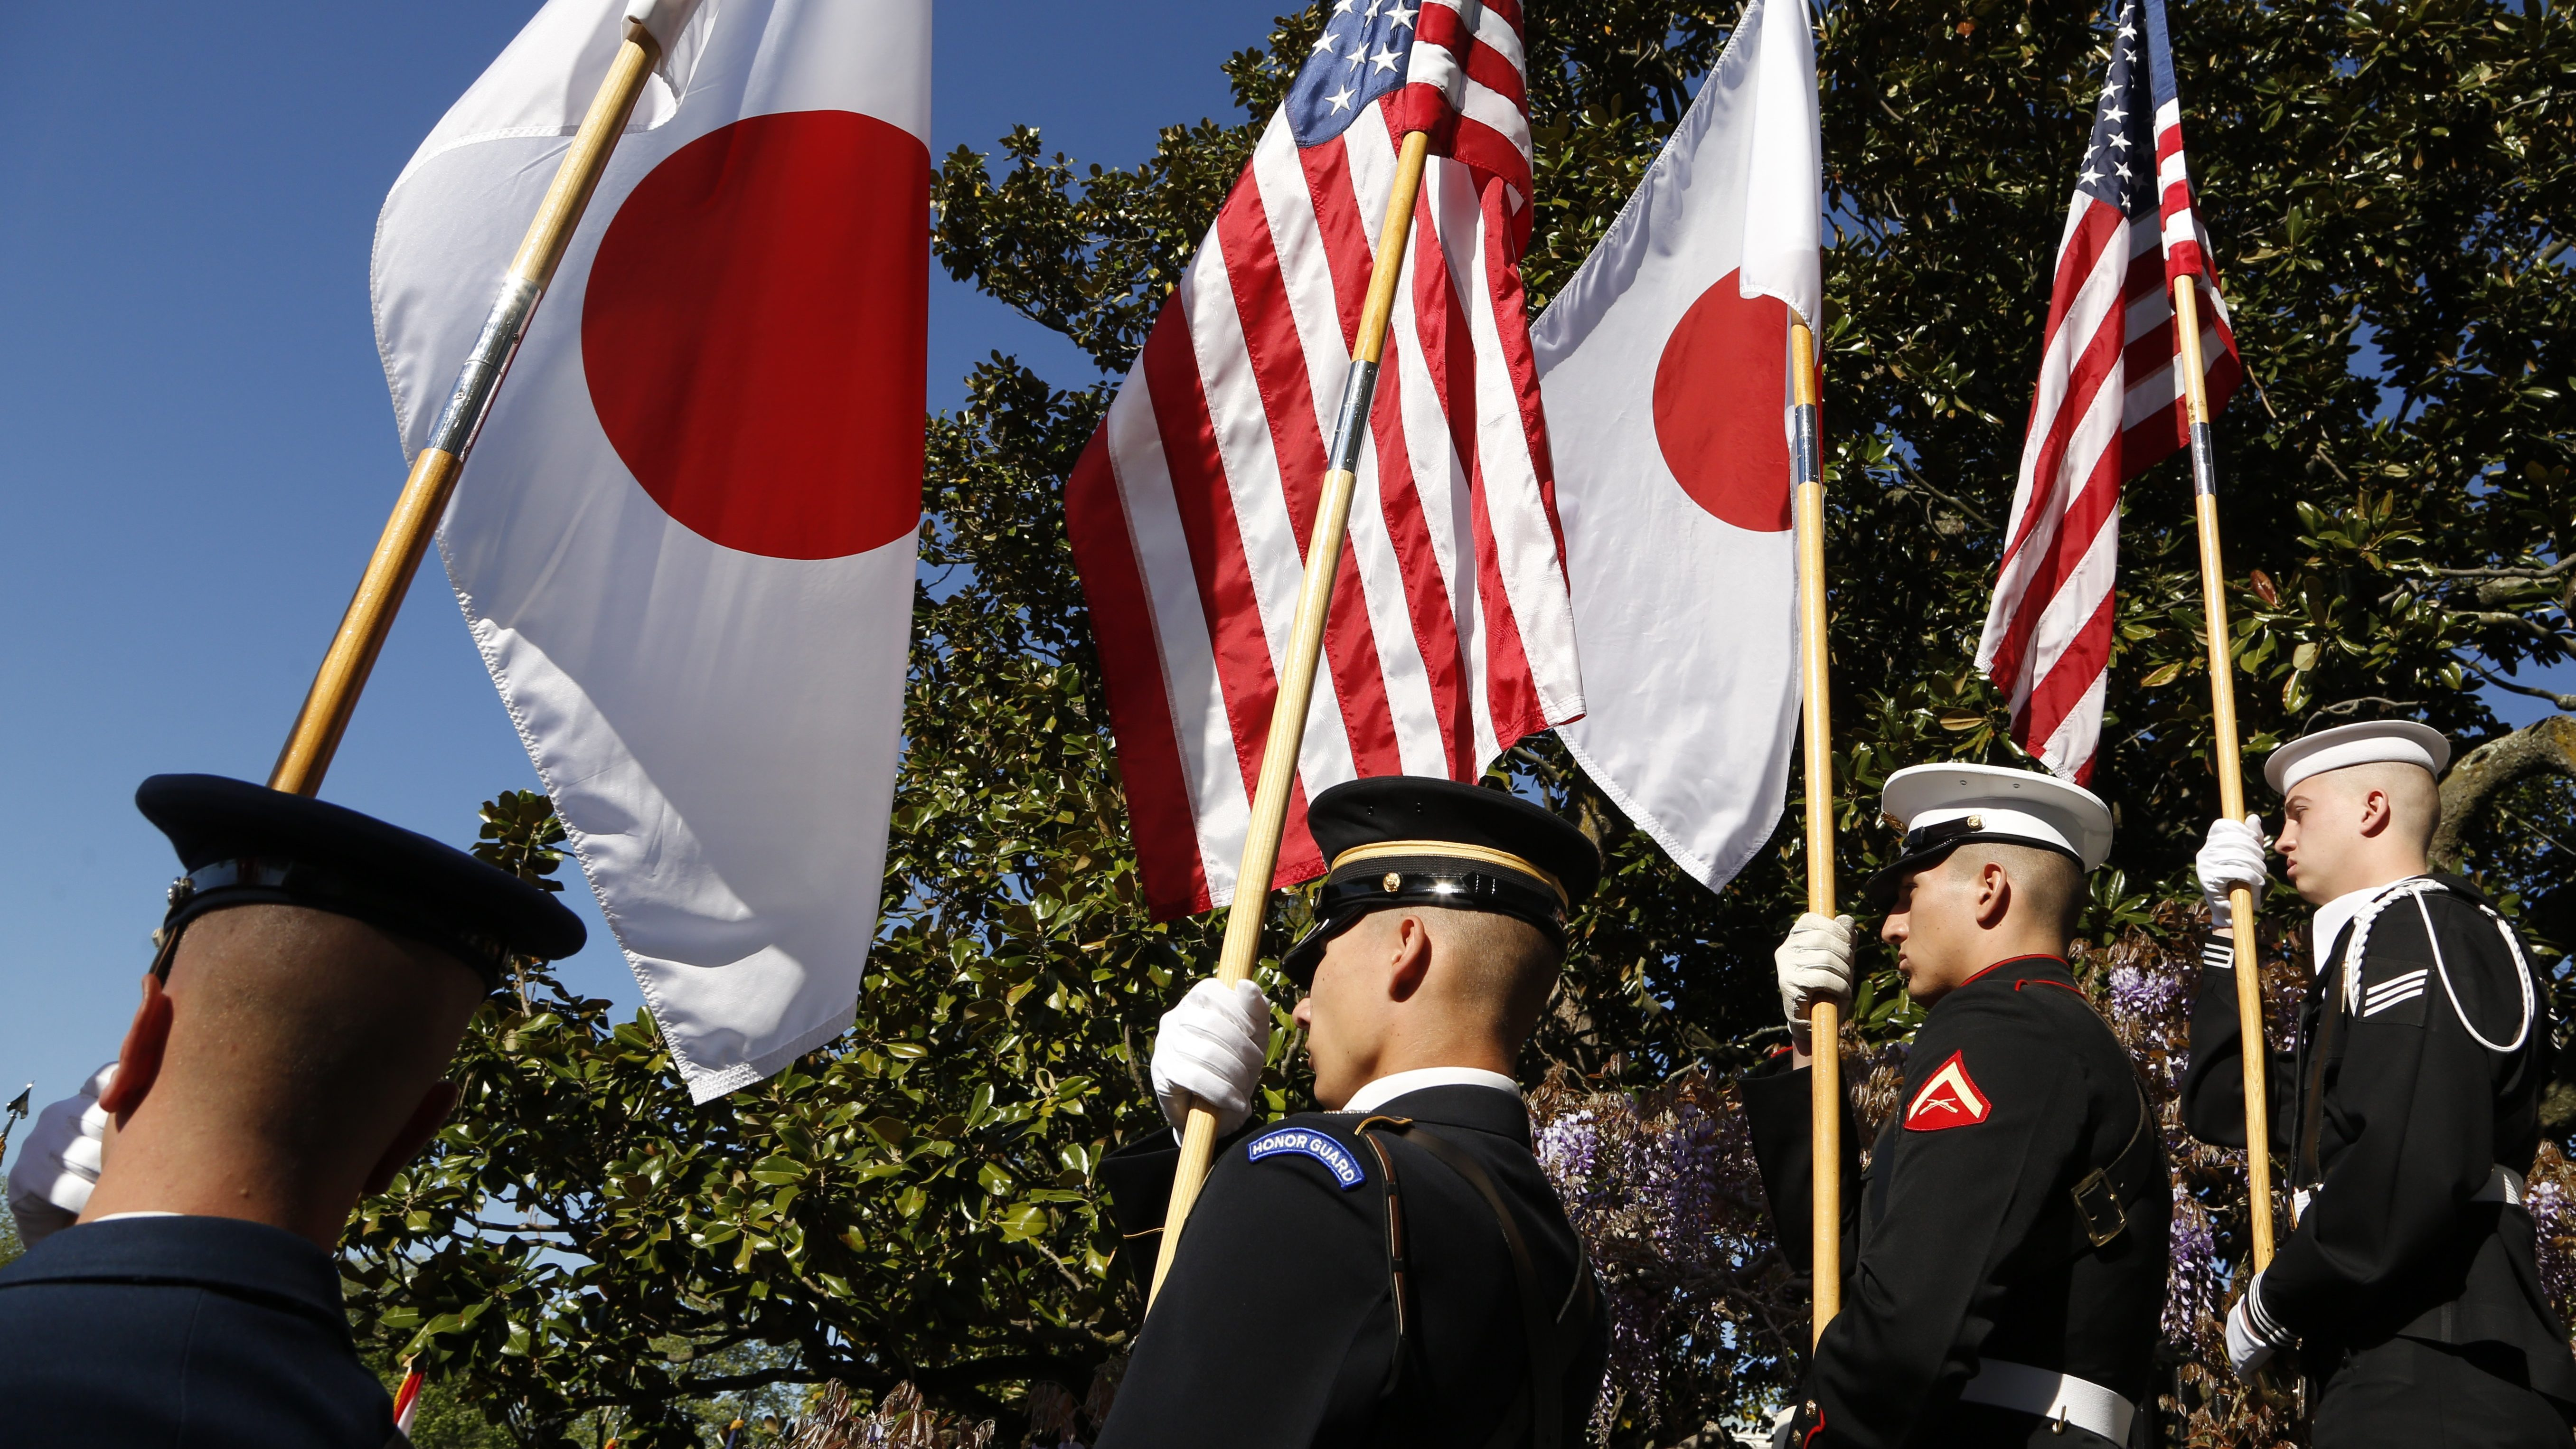 An honor guard carries U.S. and Japanese flags during an official arrival ceremony for Japanese Prime Minister Shinzo Abe on the White House South Lawn in Washington, April 28, 2015.